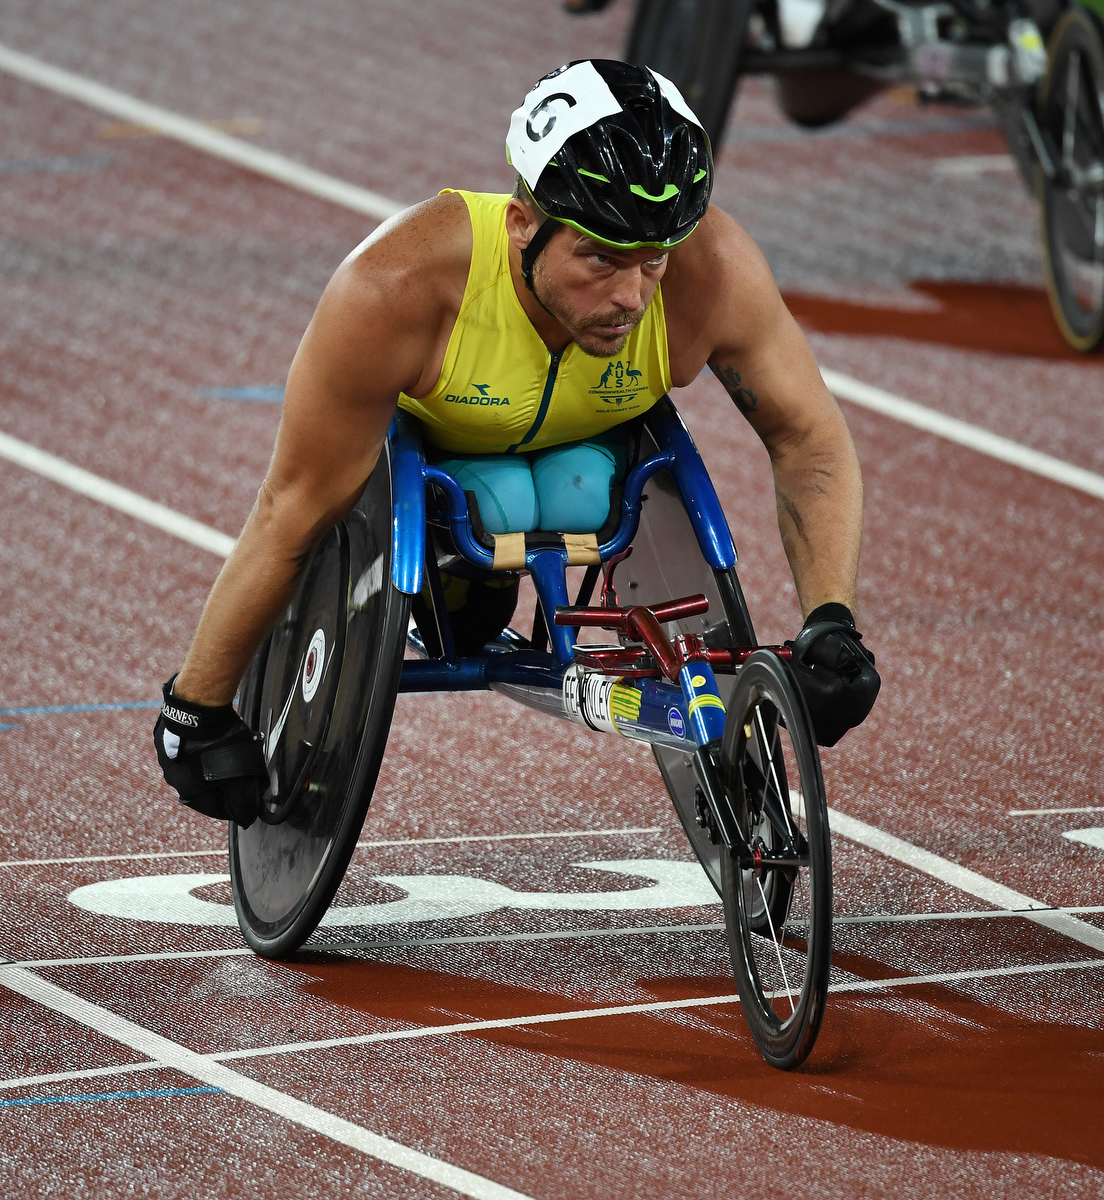 Kurt Fearnley before his 1500m race. Pic: Nick La Galle